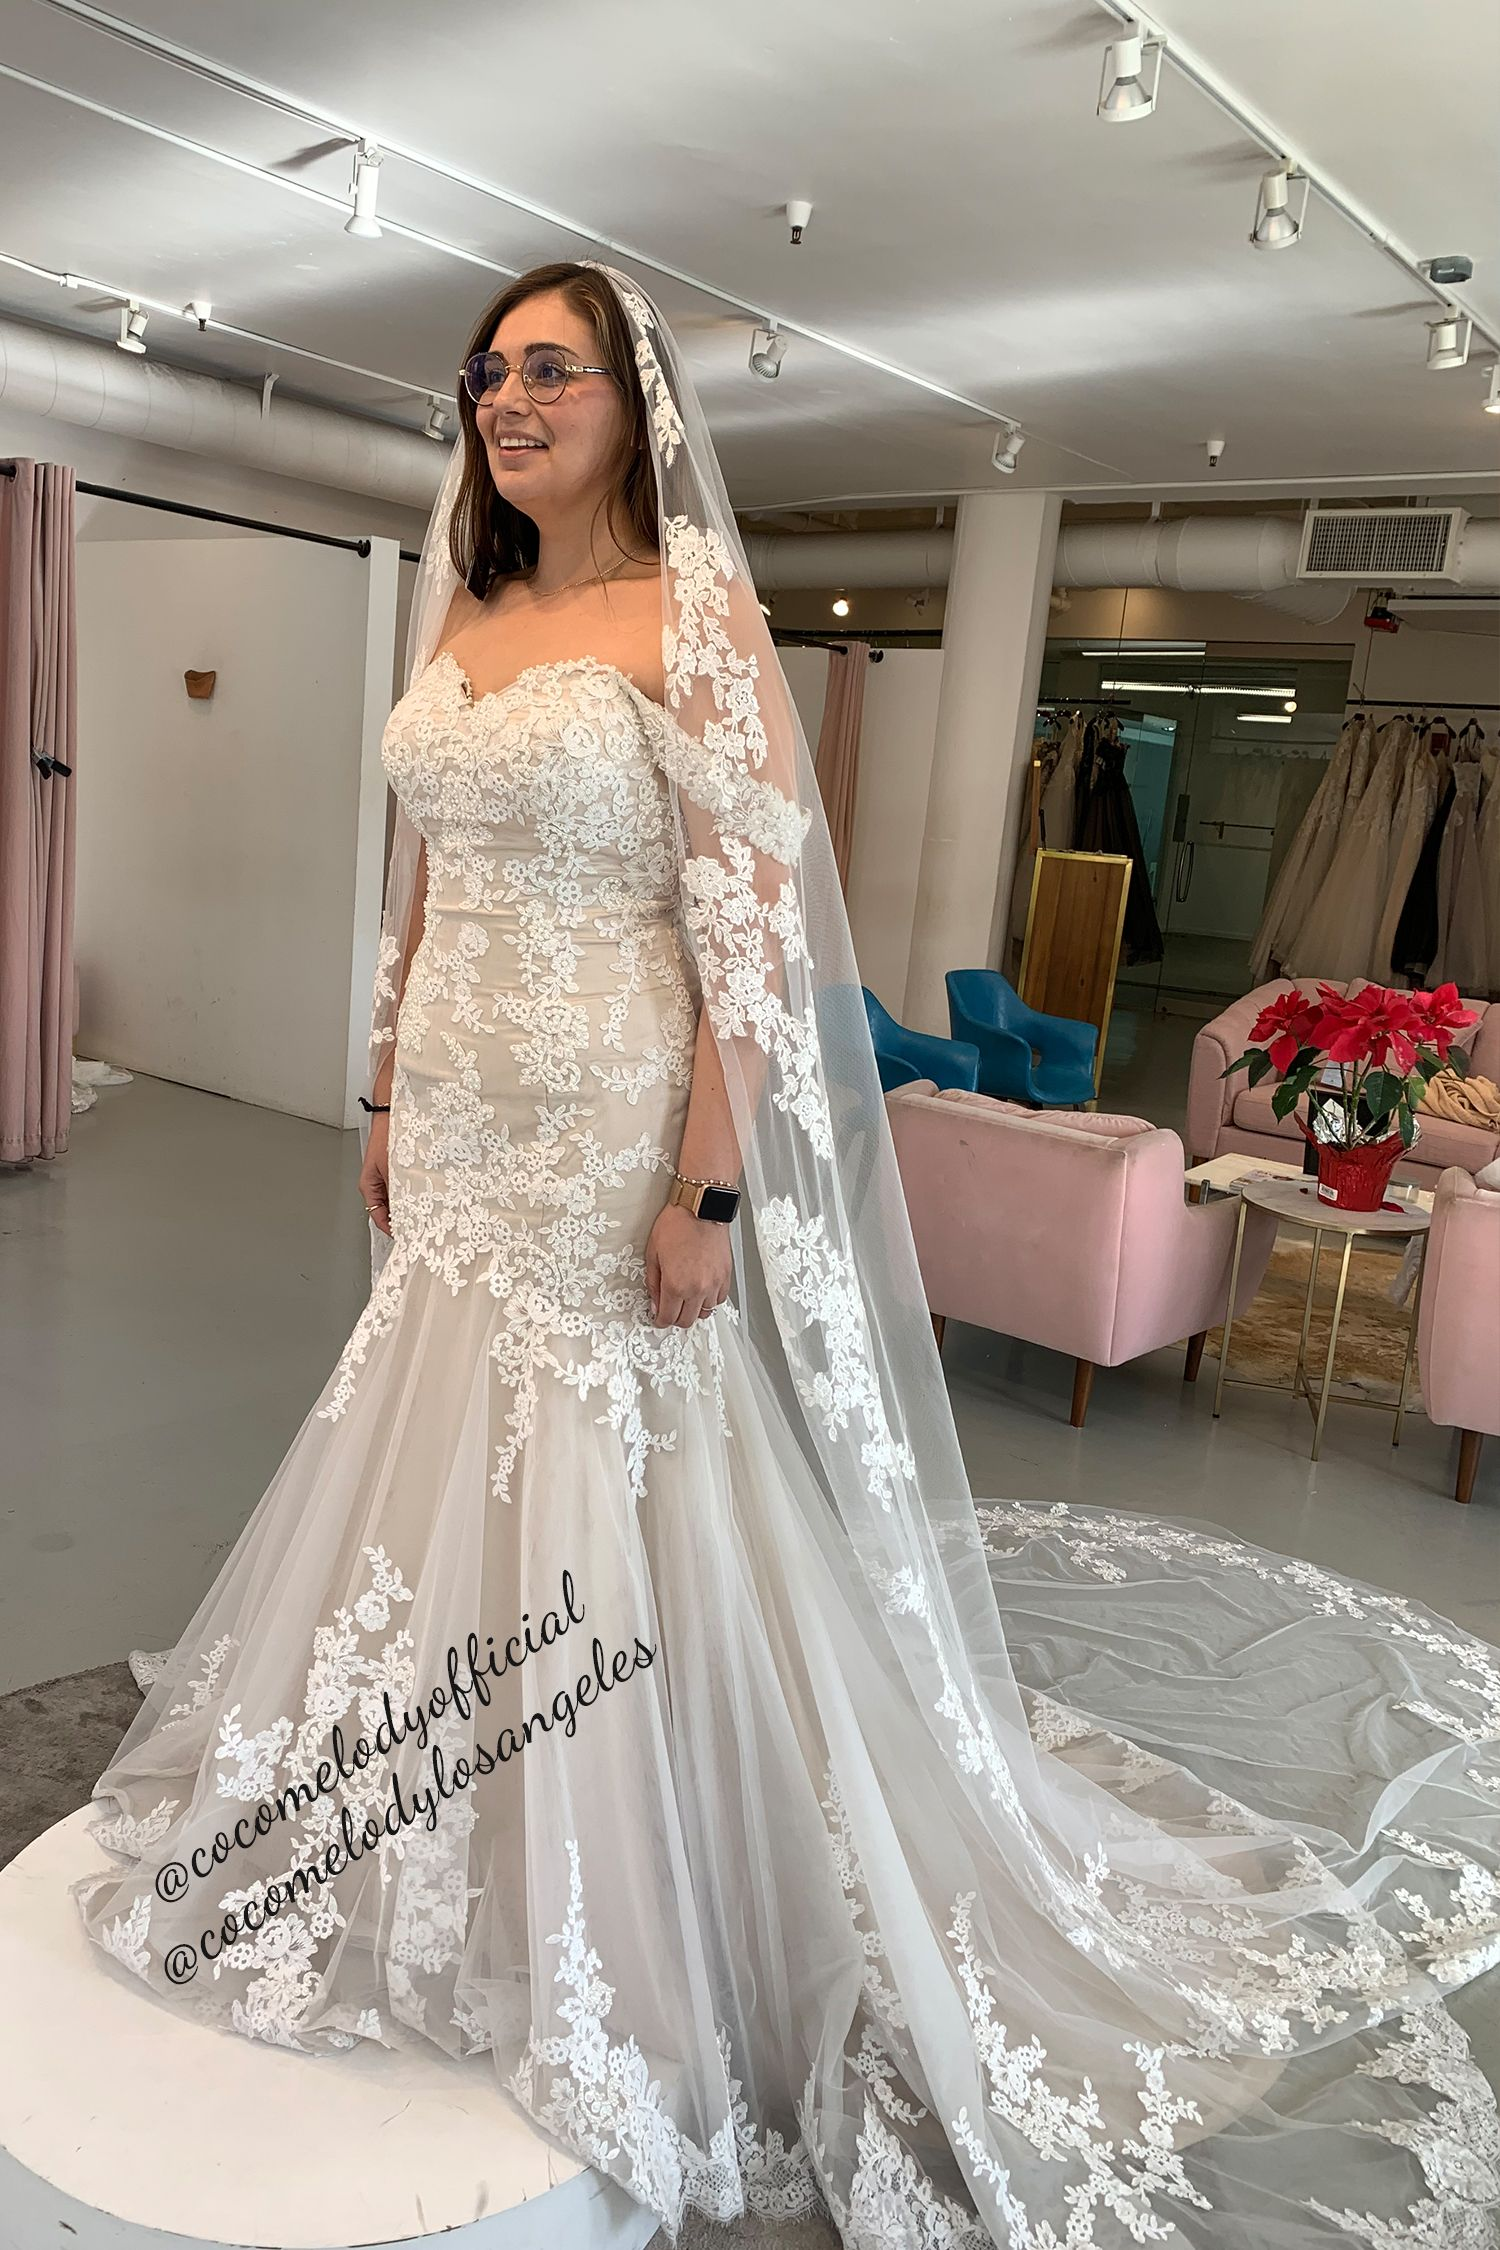 Find Your Dream Wedding Dress At Cocomelody Bridal Store In 2020 Dresses Wedding Dresses Bridesmaid Dresses